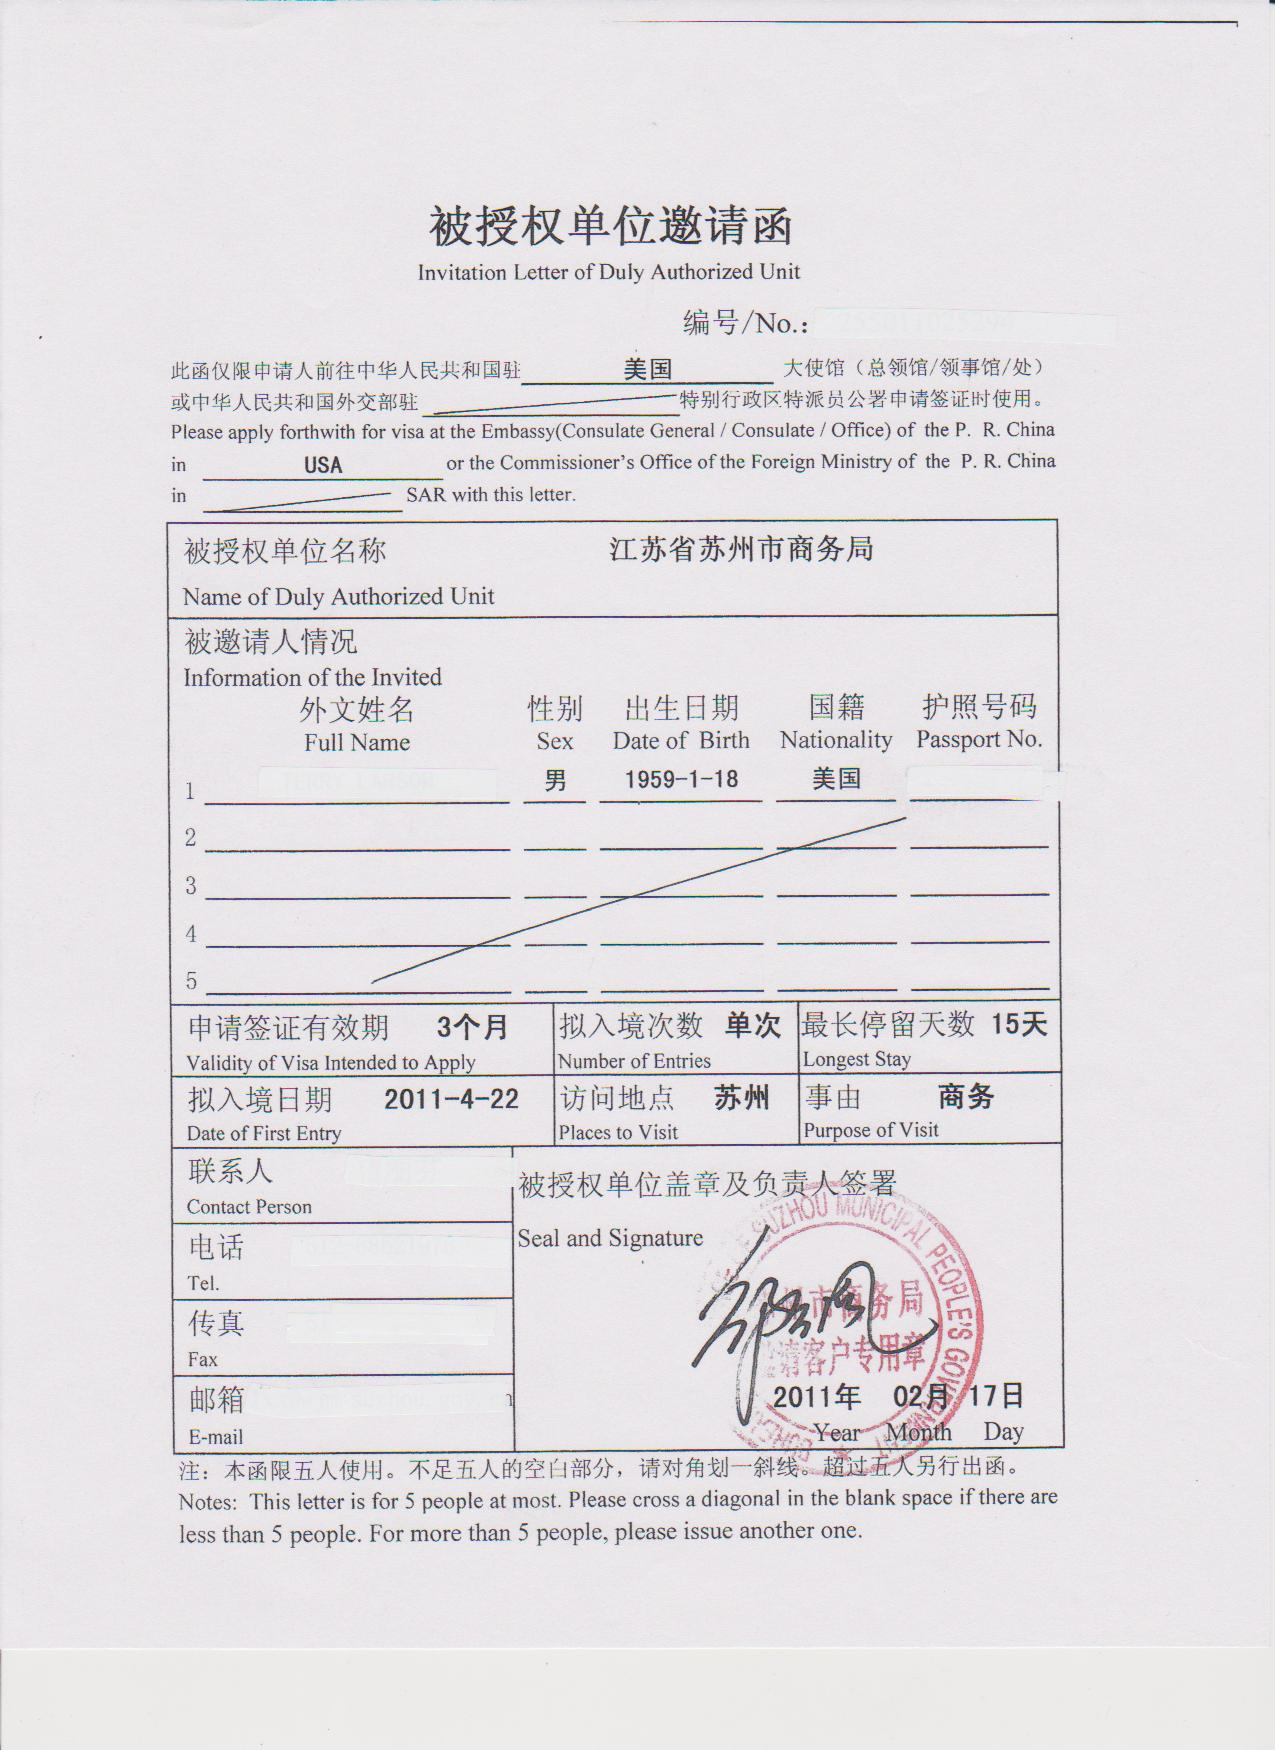 invitation_letter_of_duly_authorized_unit Visa Application Form To China From Indonesia on indonesia visa on arrival form, indonesia consulate, indonesia immigration form, indonesia passport, indonesia business visa form, indonesia brochure,